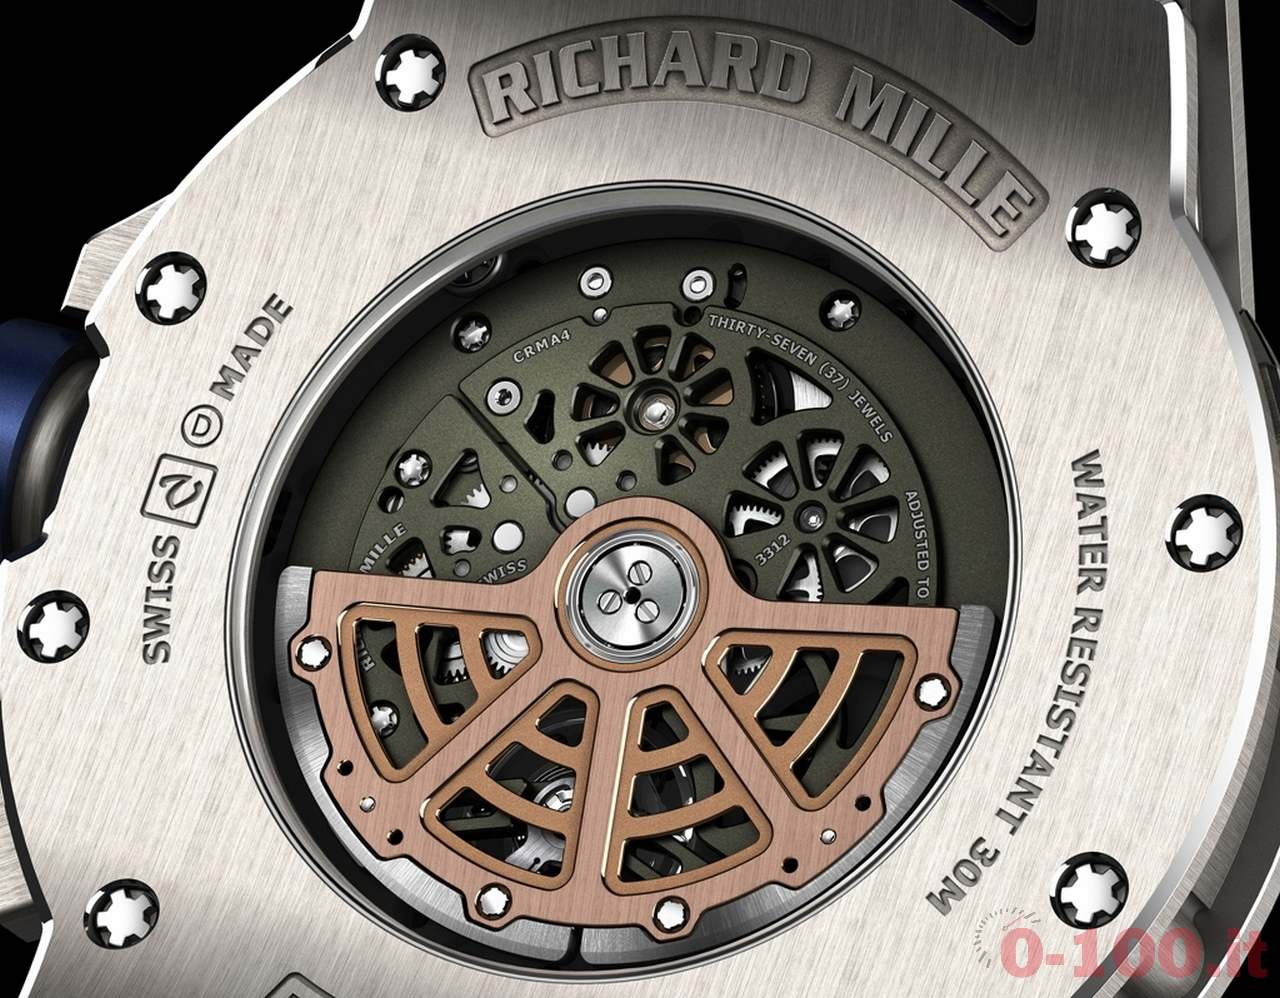 siar-2015-richard-mille-rm-58-01-heure-universelle-tourbillon-prezzo-price_0-1004